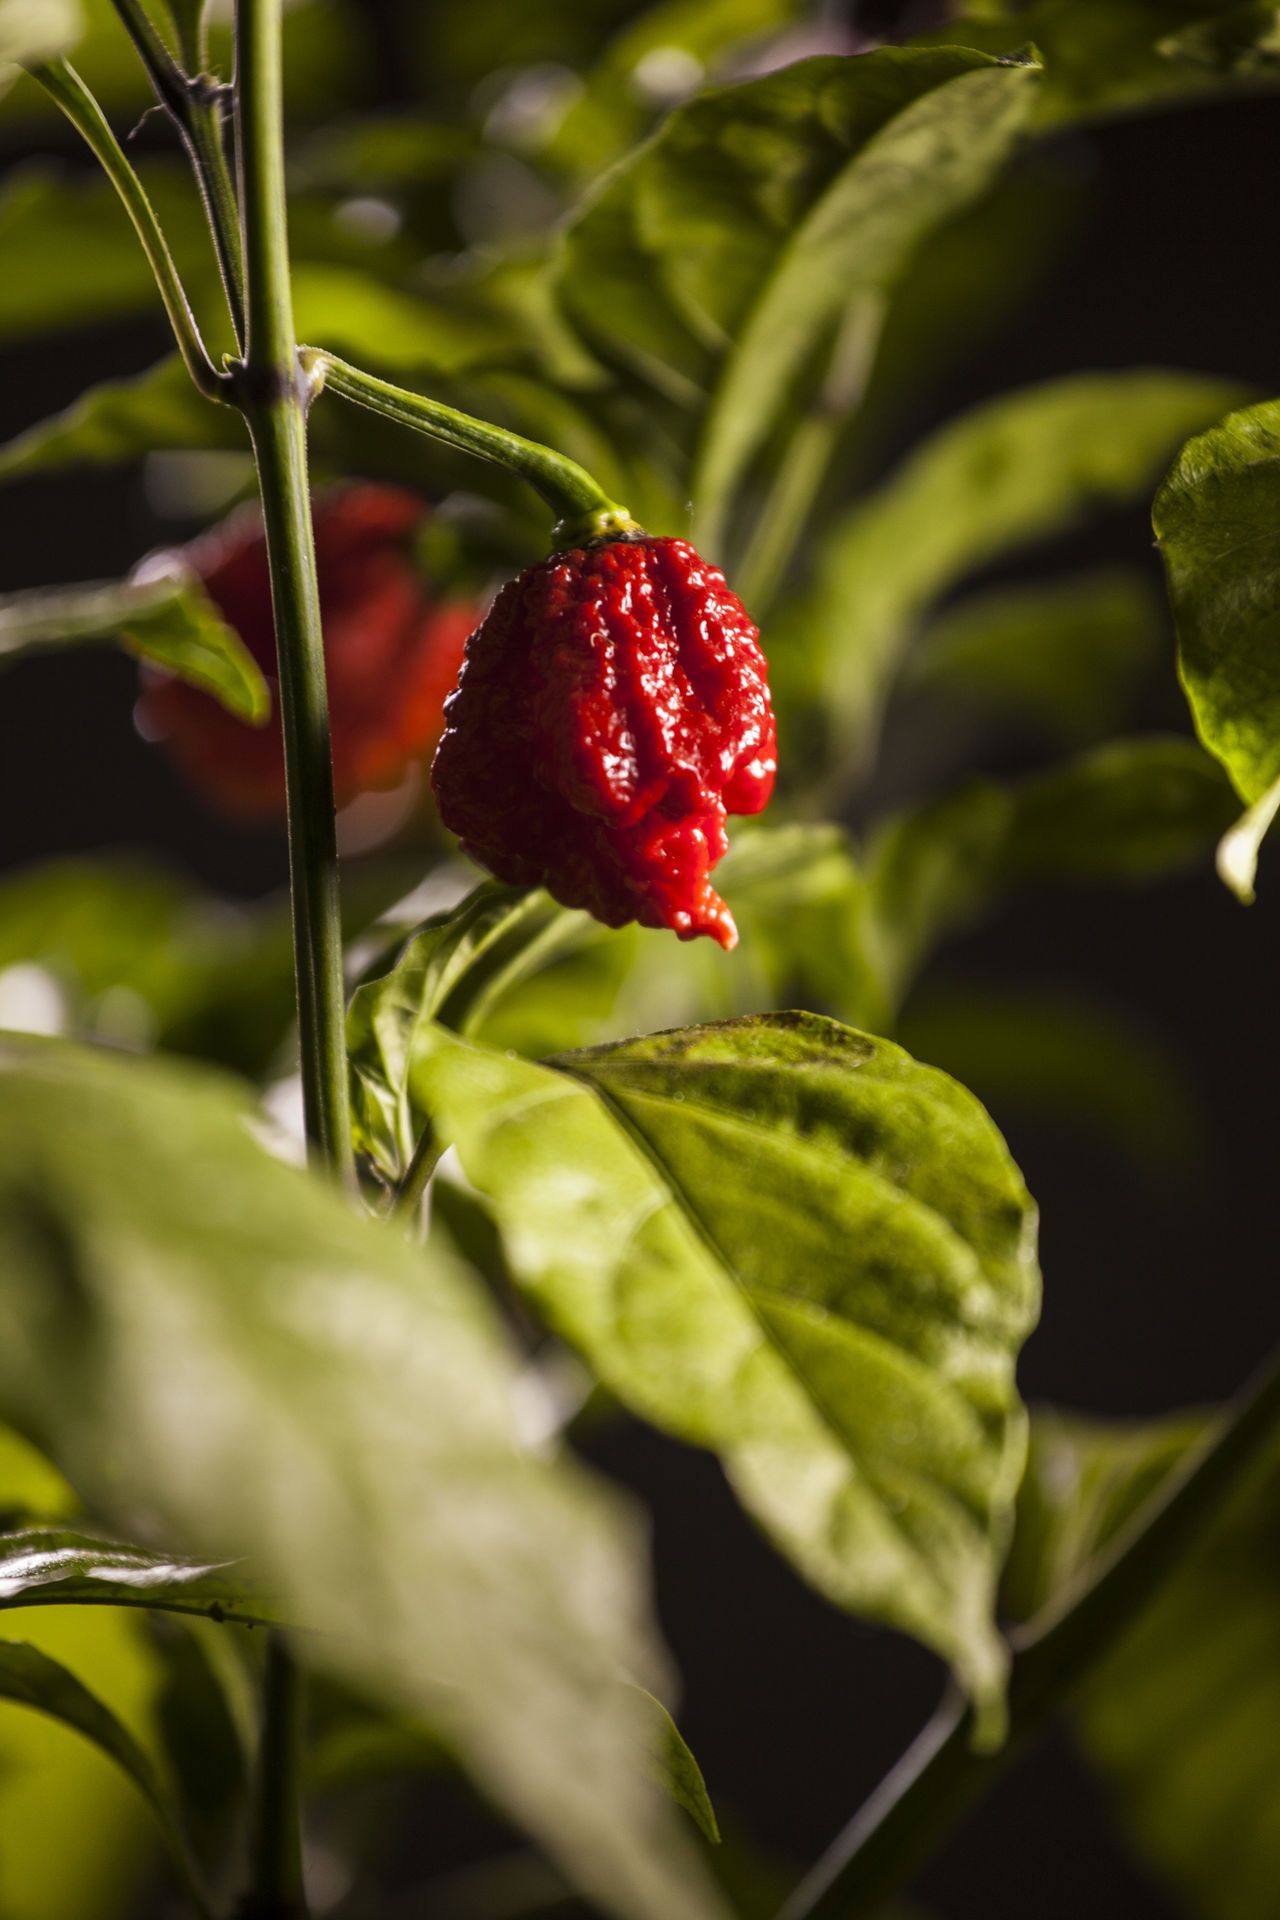 Agriculture Close-up Day Food Food And Drink Freshness Fruit Green Color Growth Healthy Eating Hot Hot Peppers Hot Peppers Plants Leaf Nature No People Outdoors Plant Red Very Hot And Spicy Food